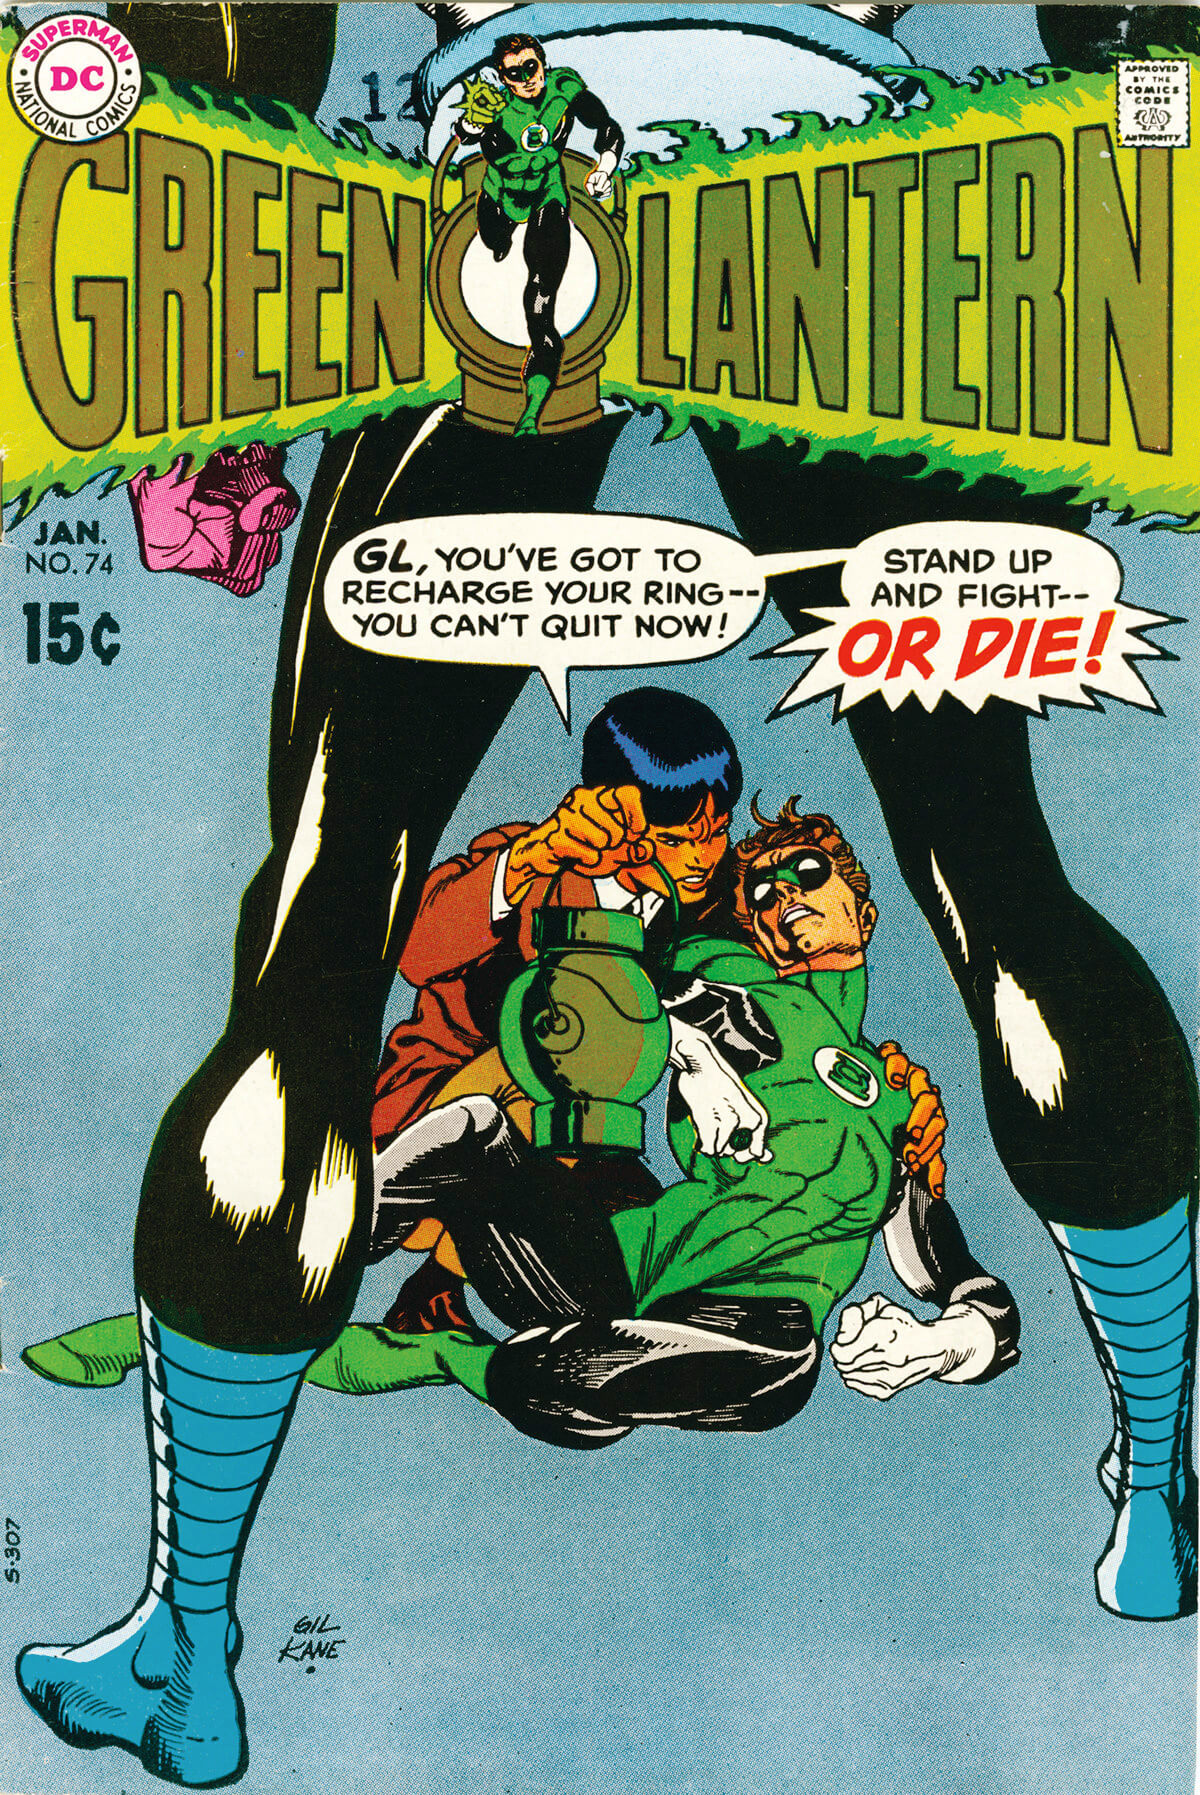 Green Lantern 74 Cover by Gil Kane